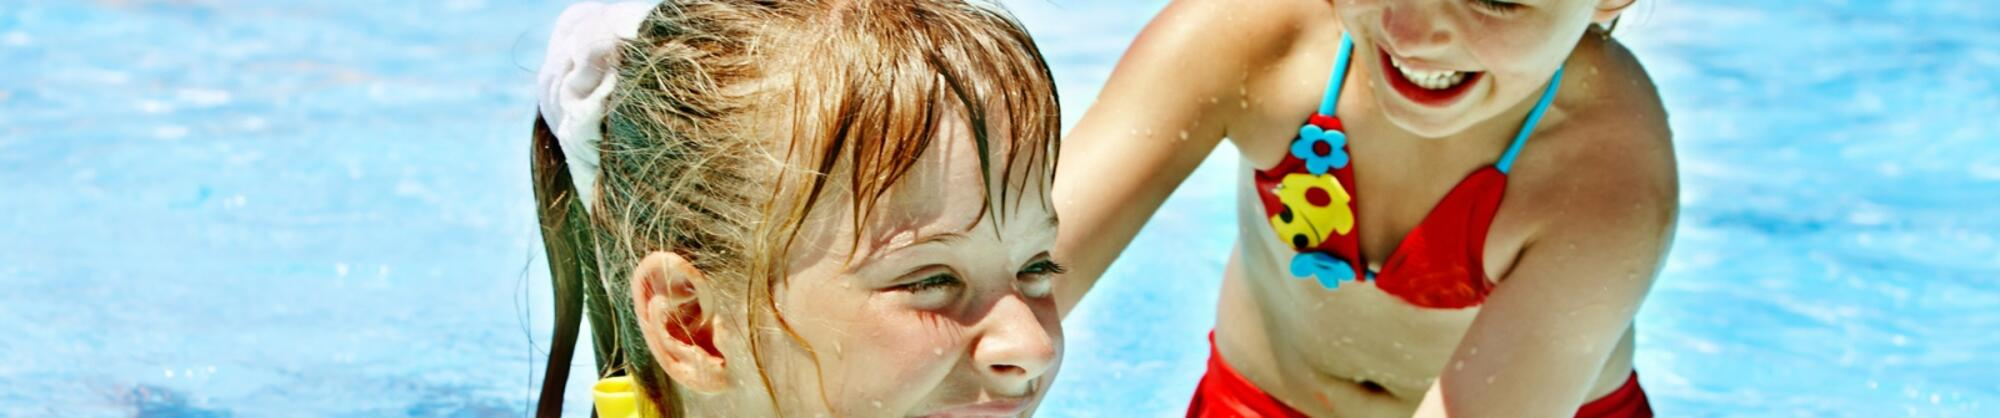 Offer End of Summer Rimini: low season holiday with 2 CHILDREN STAYING FOR FREE up to 12 years